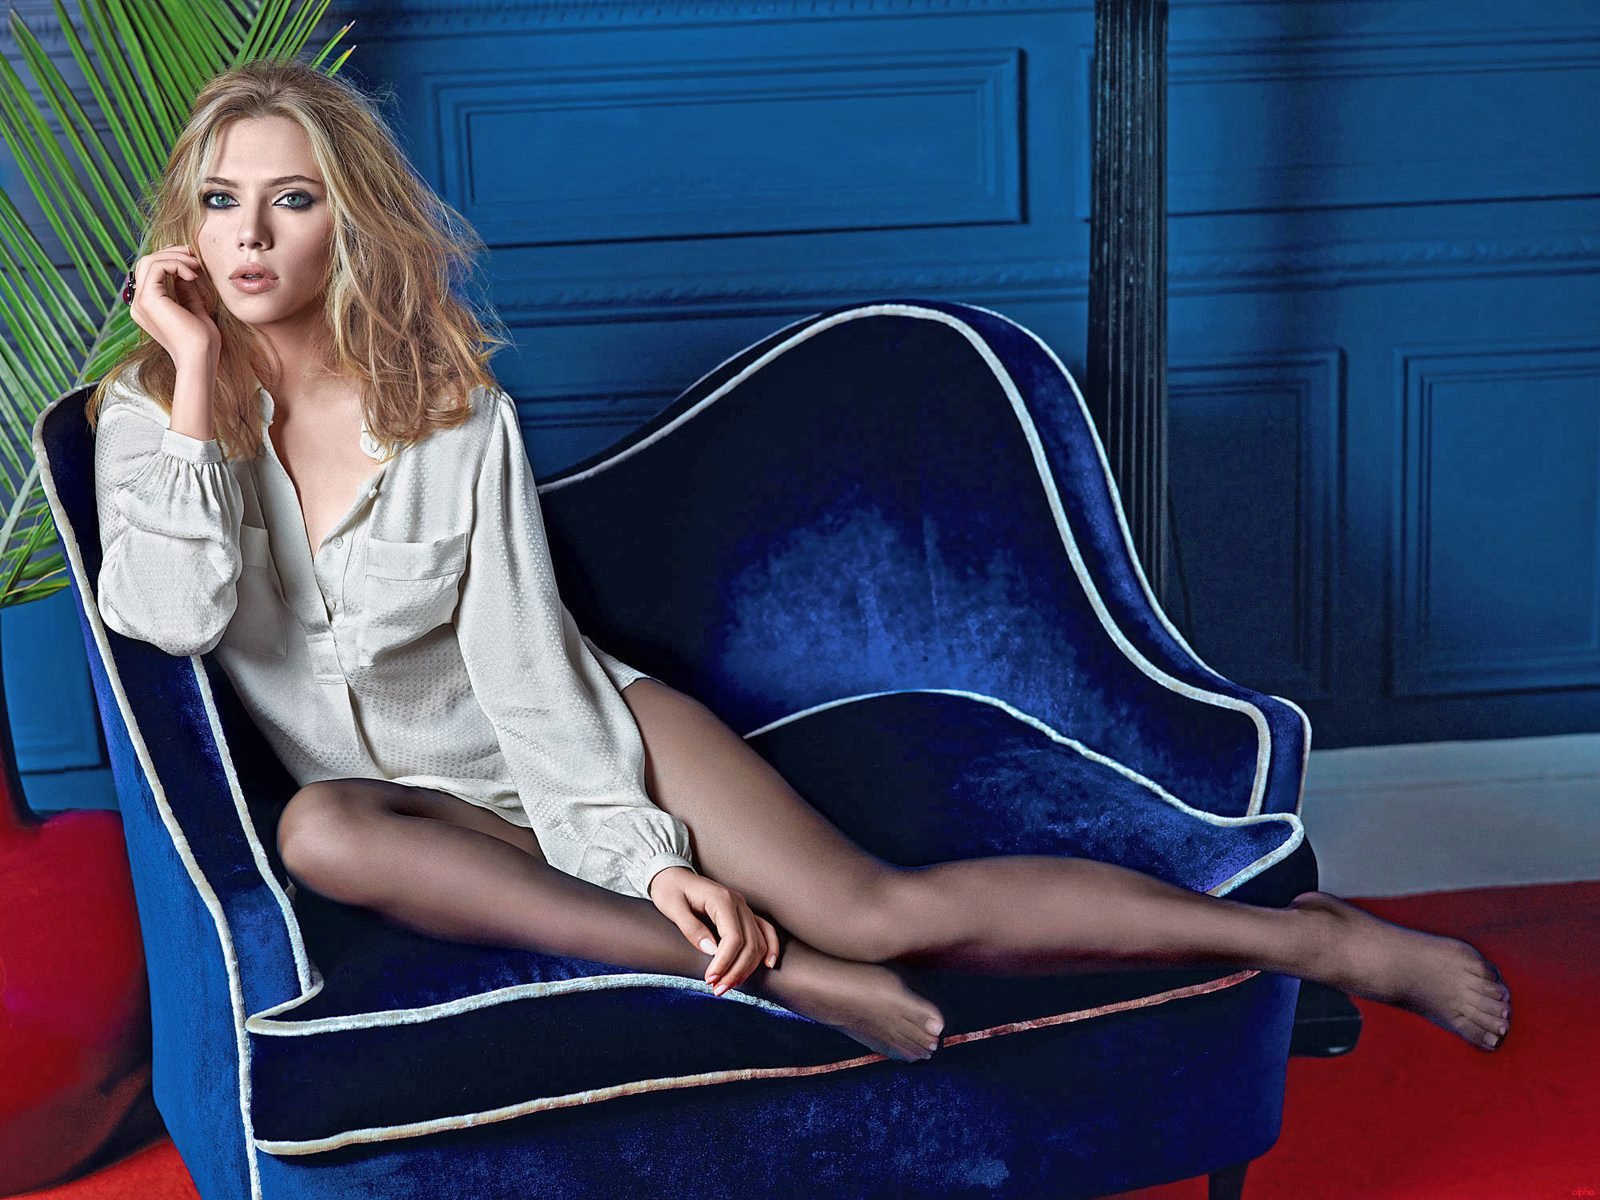 Scarlett Johansson Wallpaper: The Black Fashion World: Scarlett Johansson Legs